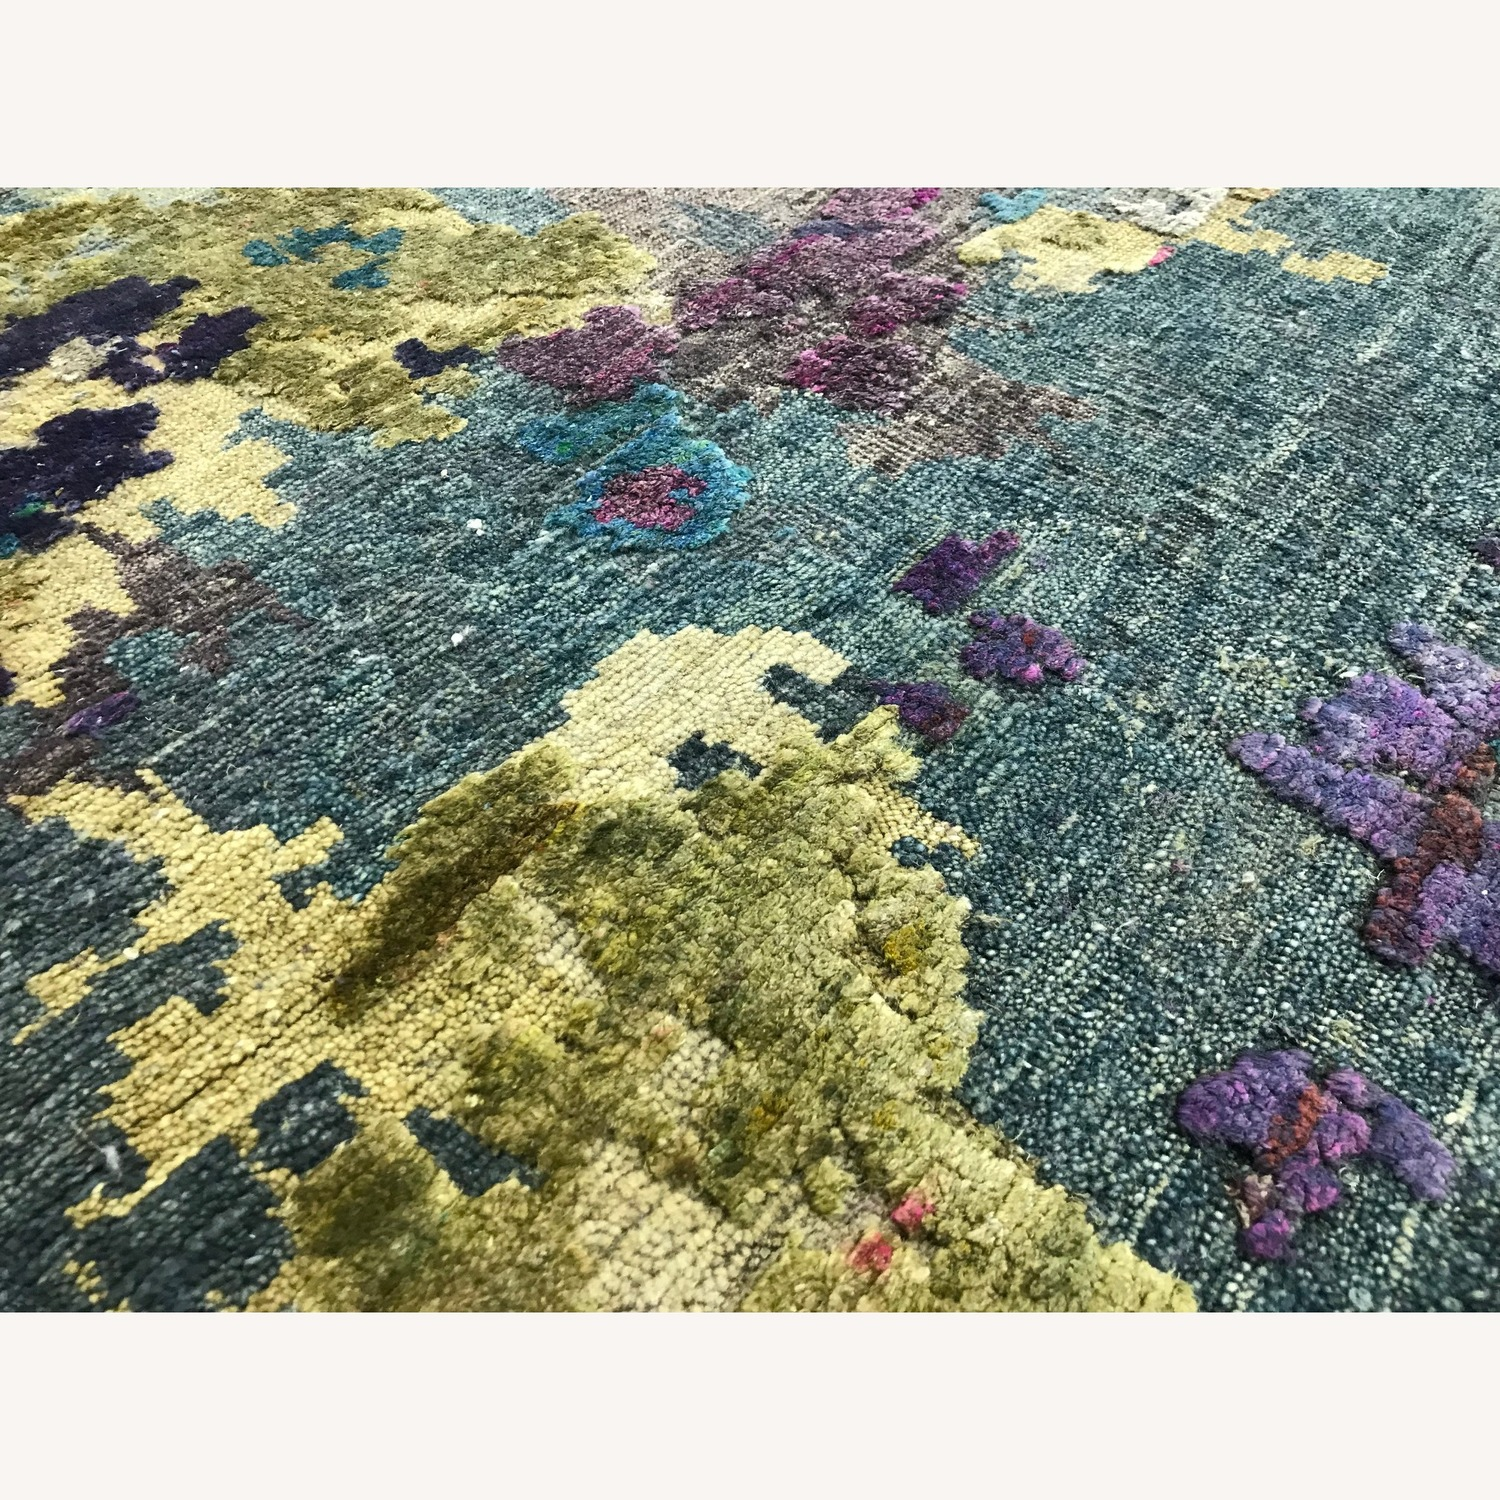 Hand-Knotted Wool & Silk Abstract Organic Woven Rug - image-2